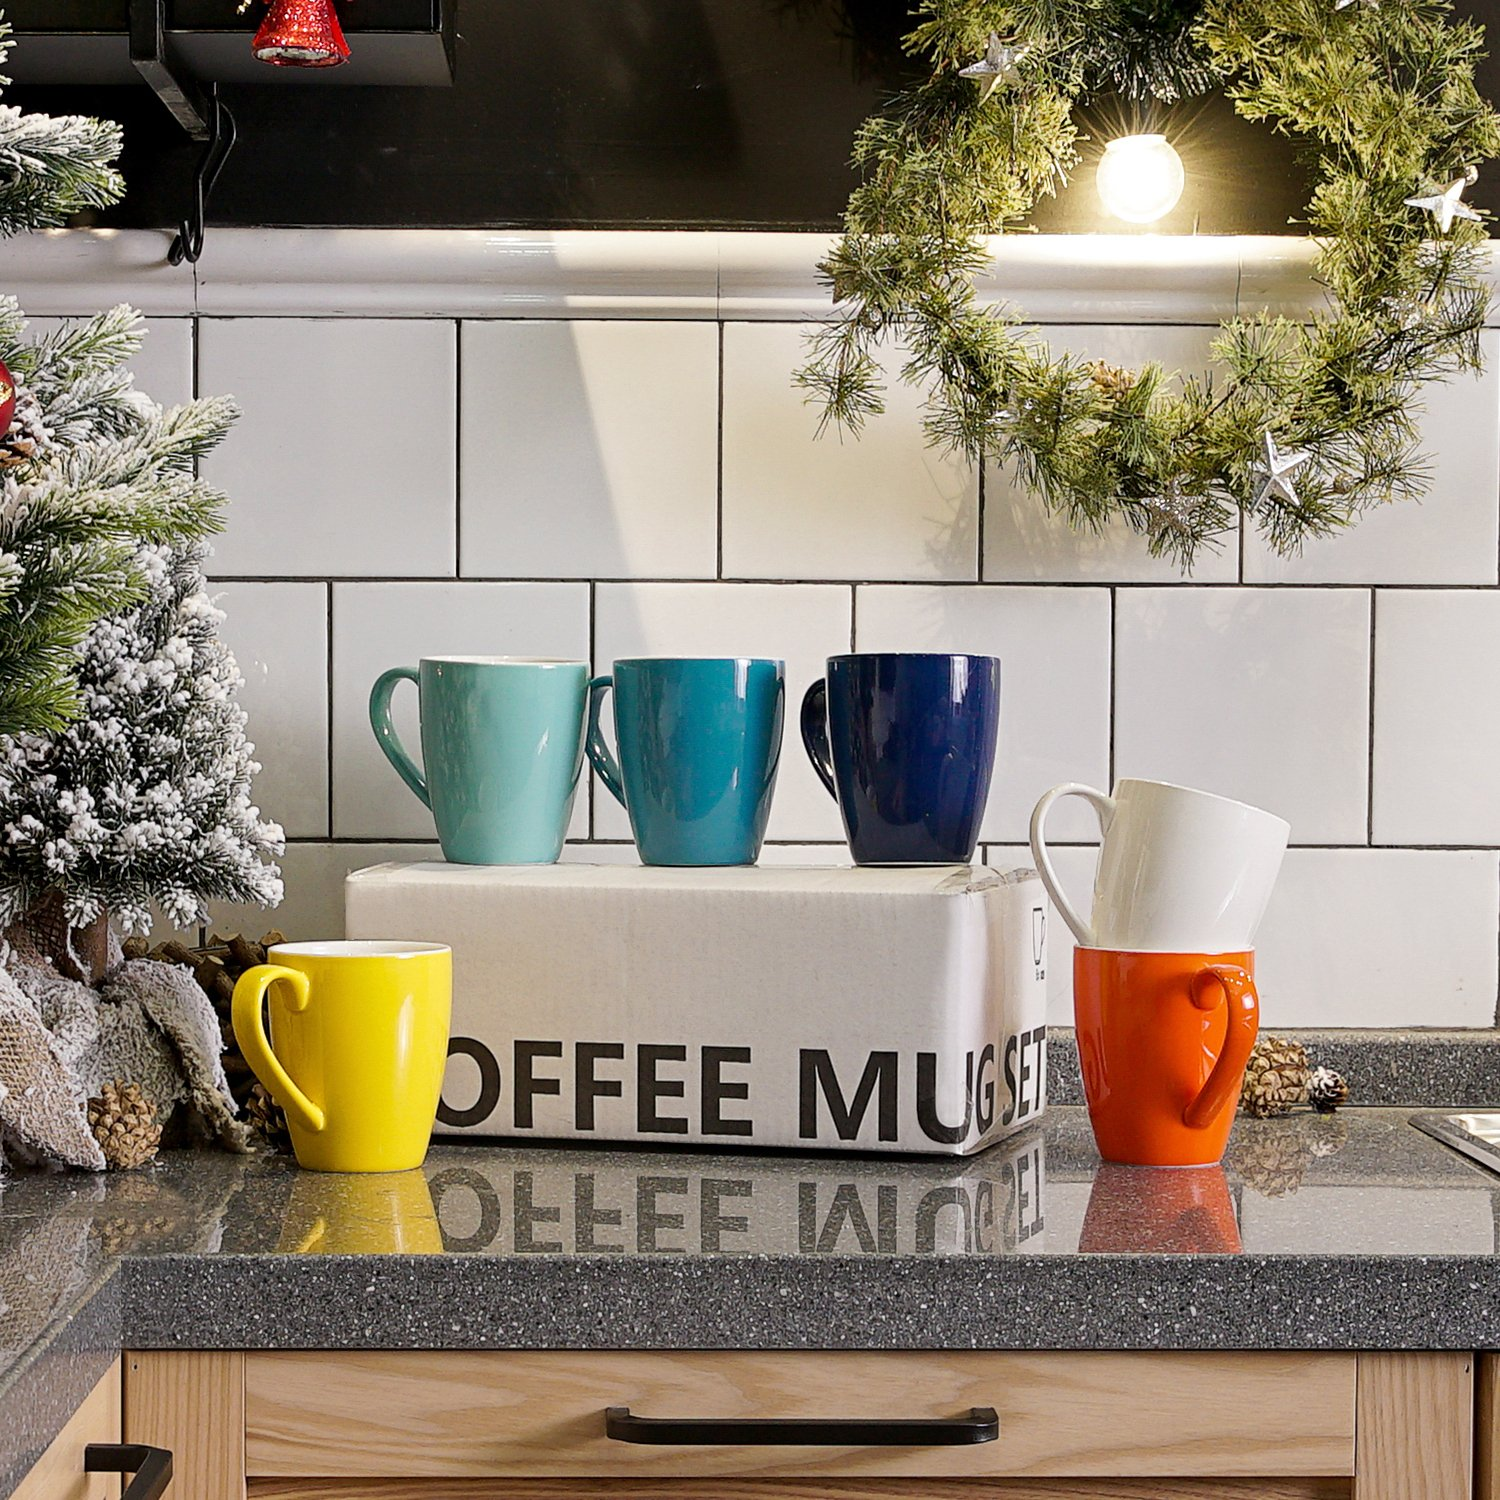 Sweese 6202 Porcelain Mugs - 16 Ounce for Coffee, Tea, Cocoa, Set of 6, Hot Assorted Colors by Sweese (Image #3)